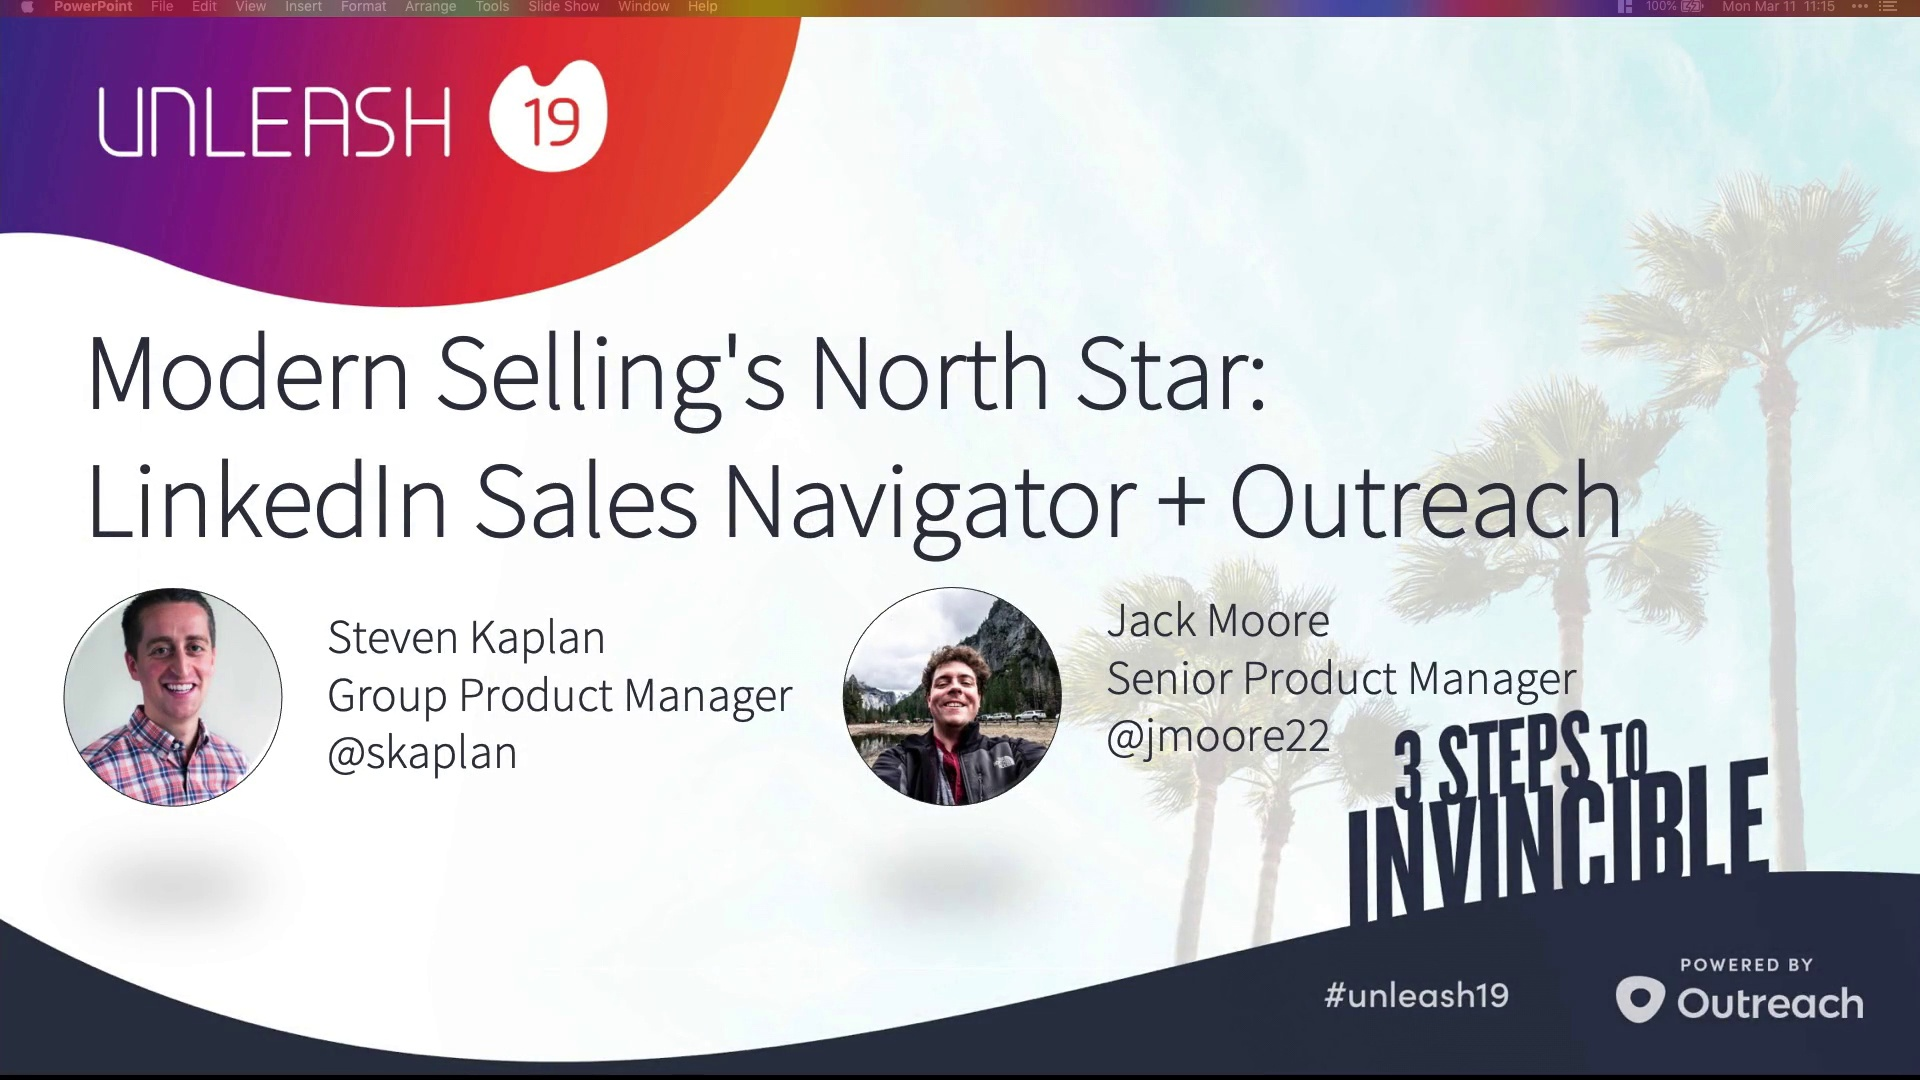 Modern Selling's North Star, LinkedIn Sales Nav and Outreach - Steven Kaplan, Jack Moore